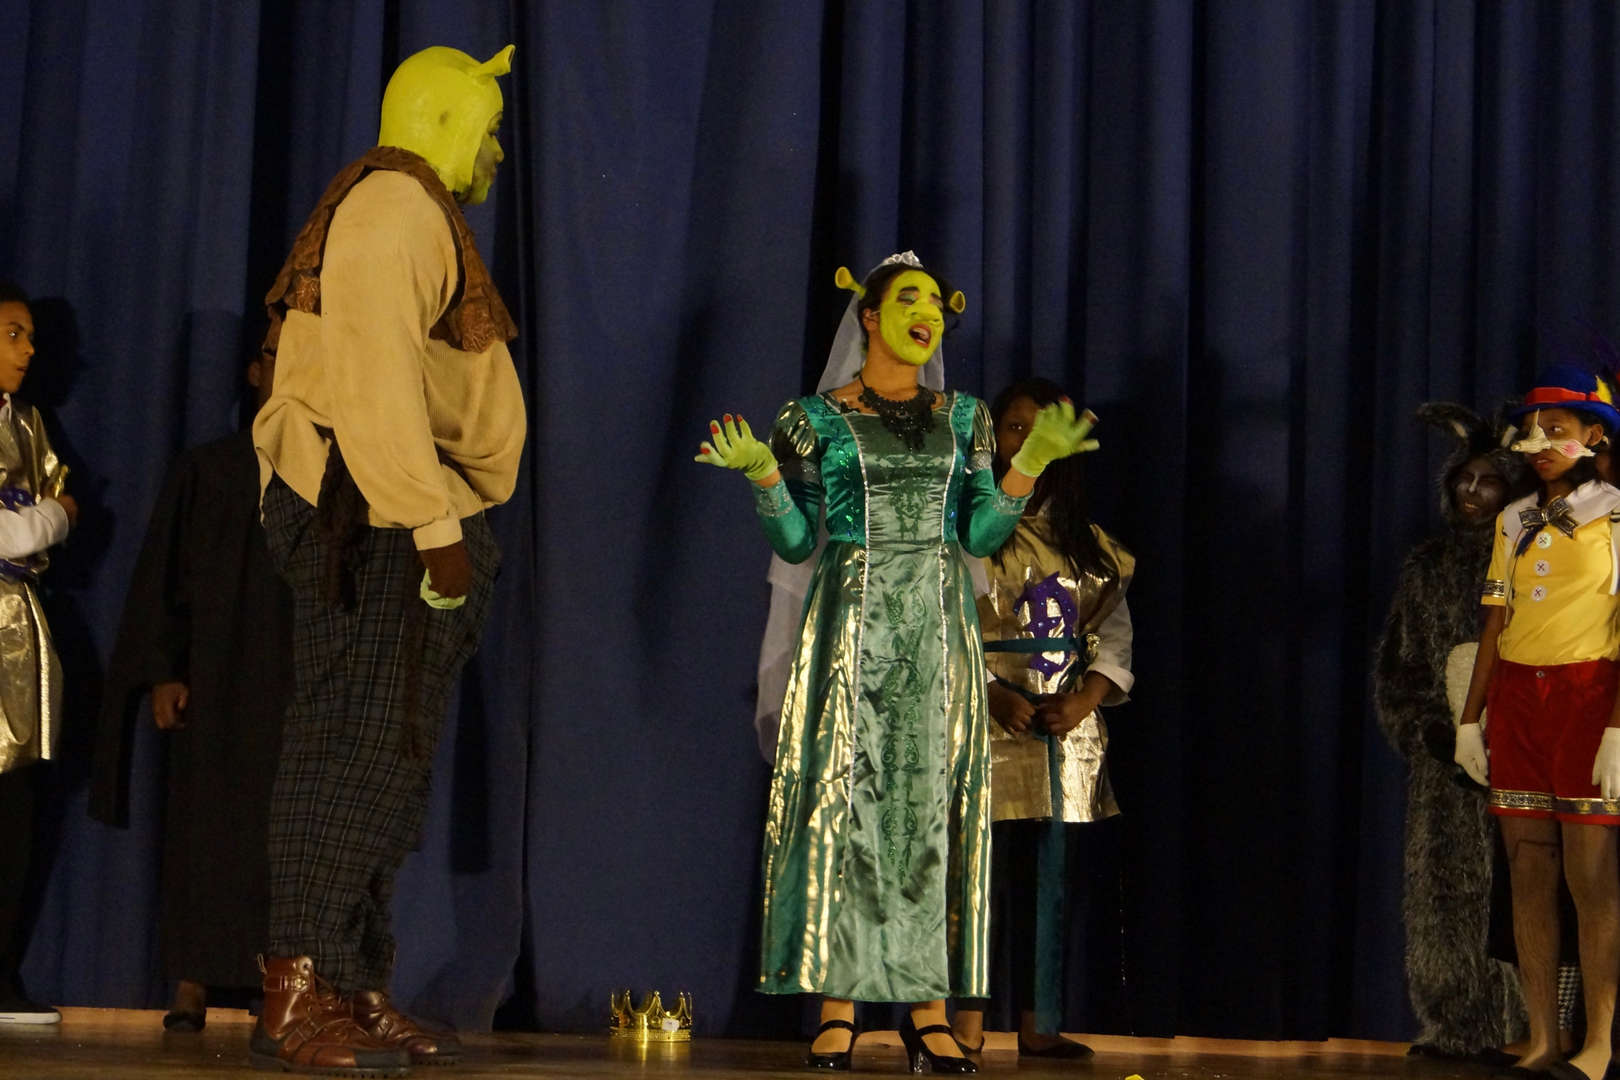 Shrek on stage listening in scene